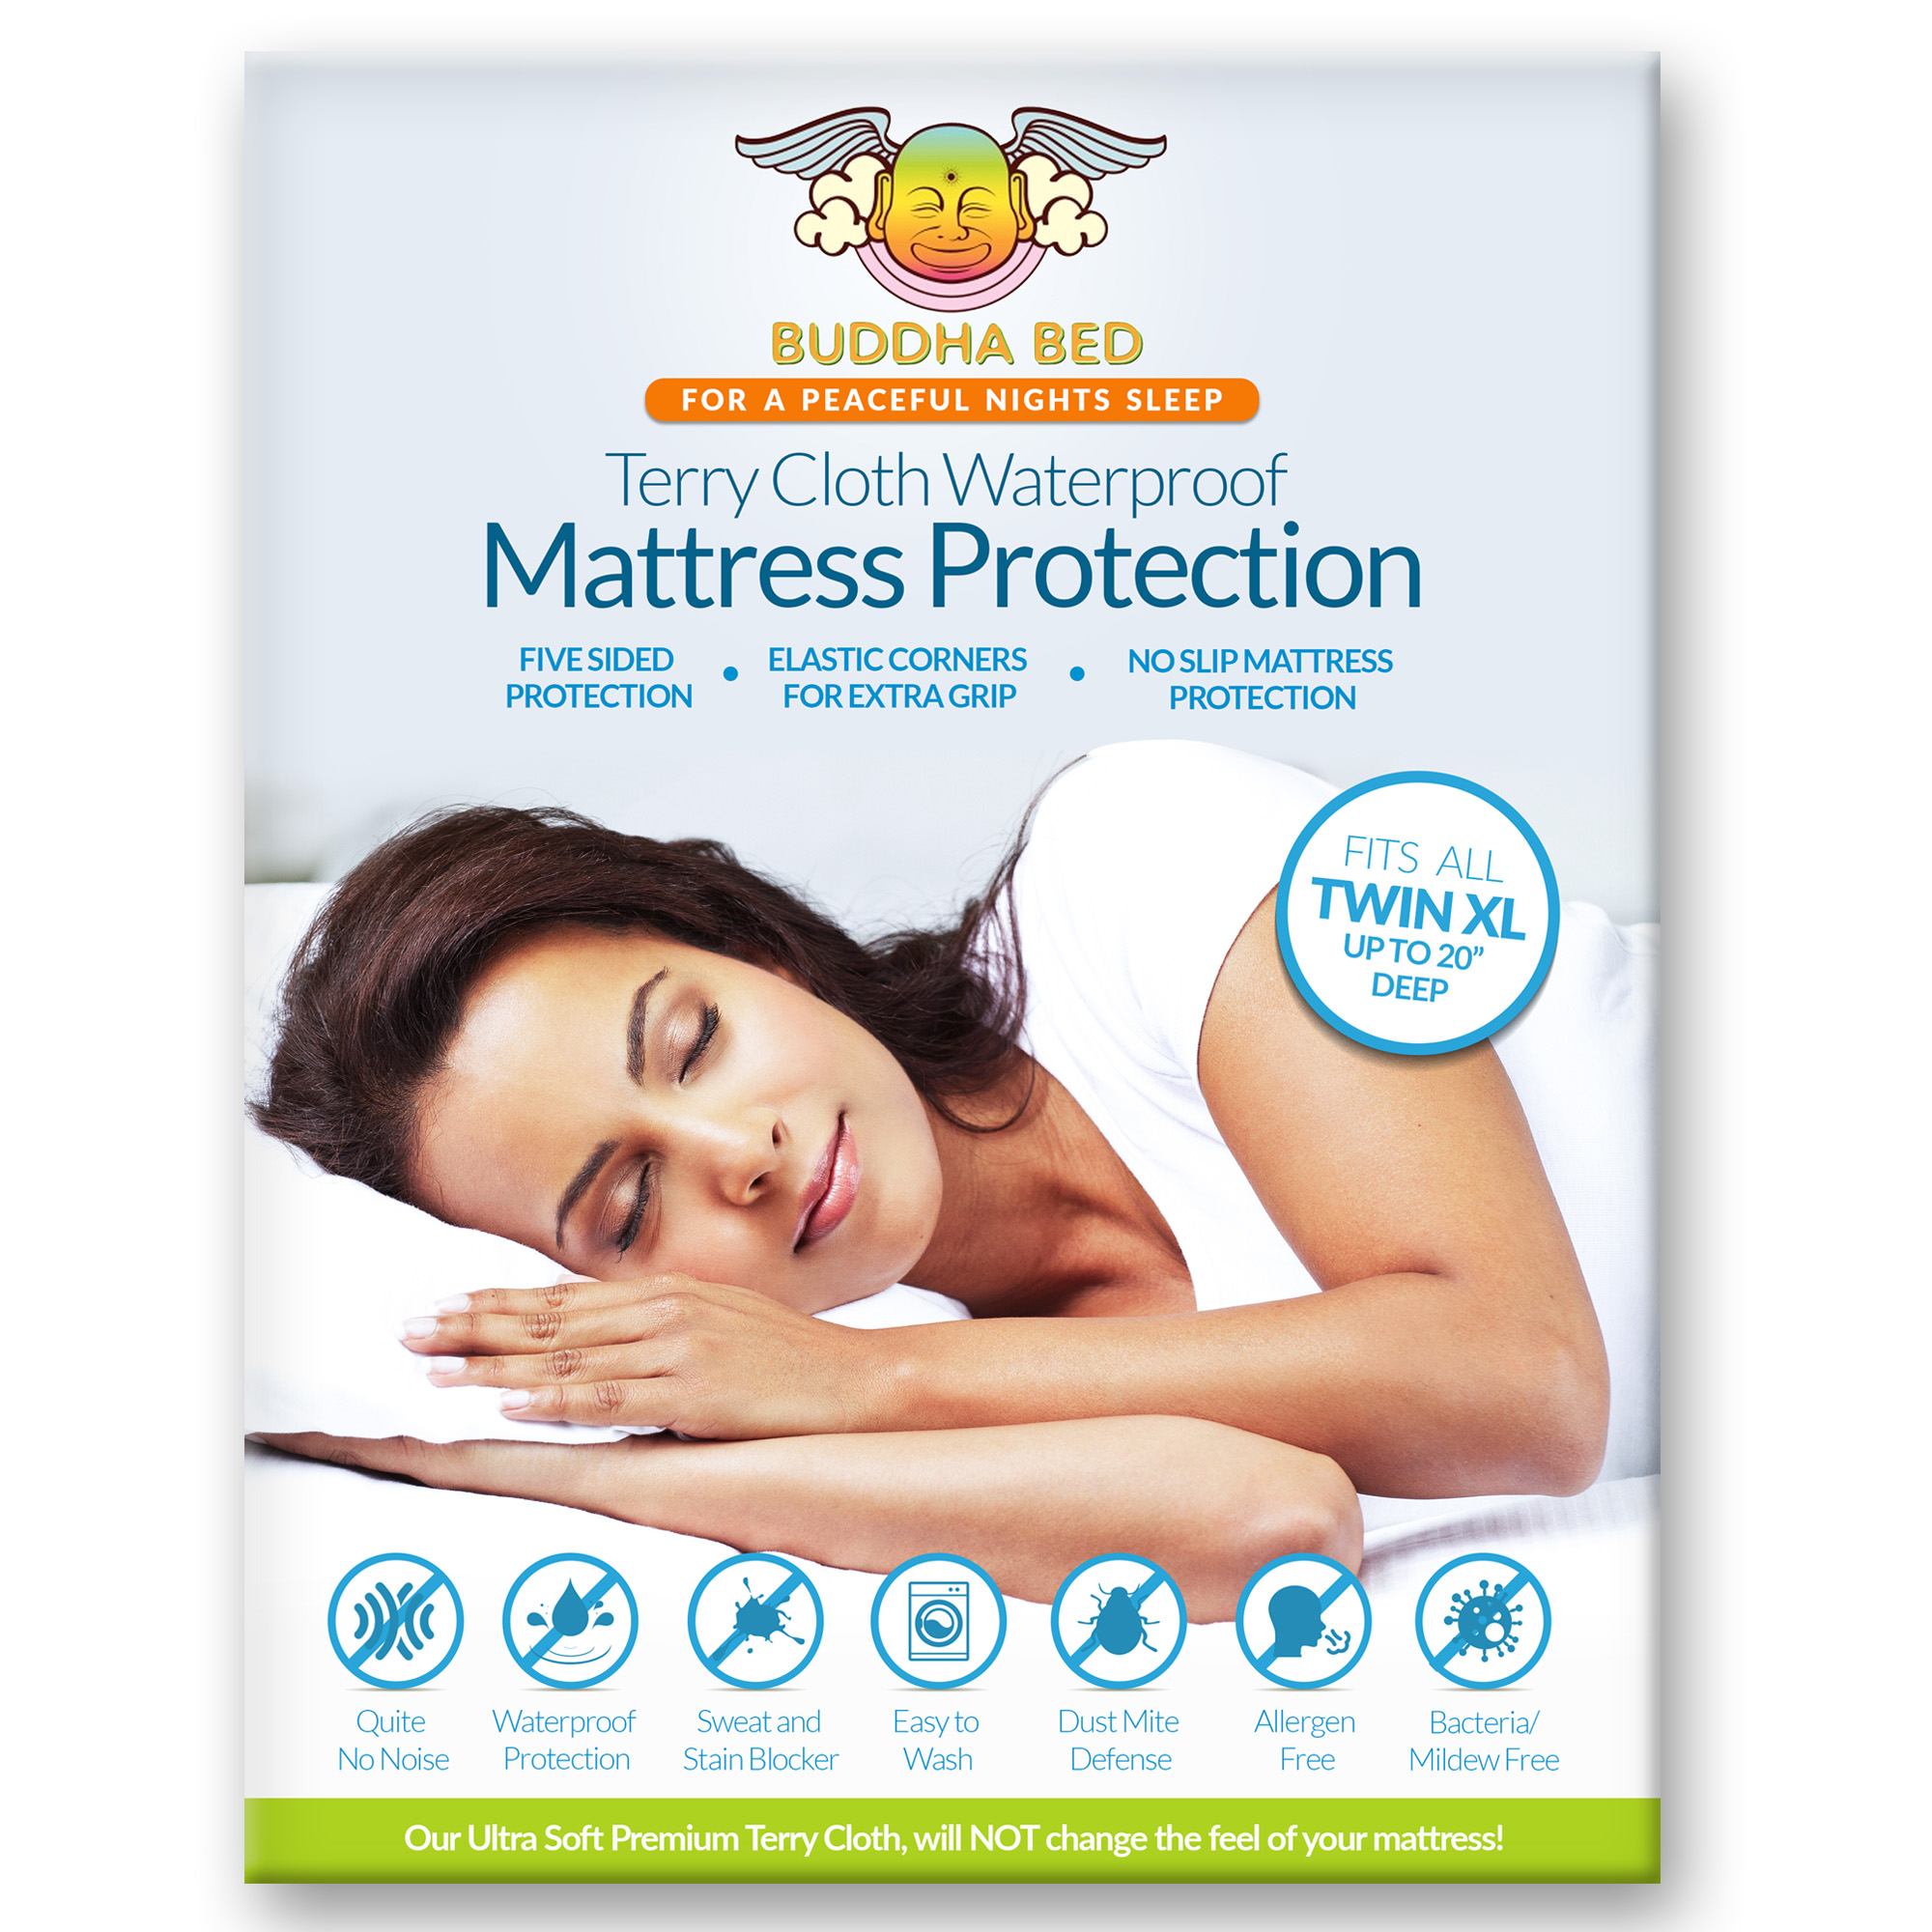 Twin XL Mattress Protector. 100% Waterproof- Blocks Sweat, Stains and Urine. Ultra Soft,... by LIONFINCH